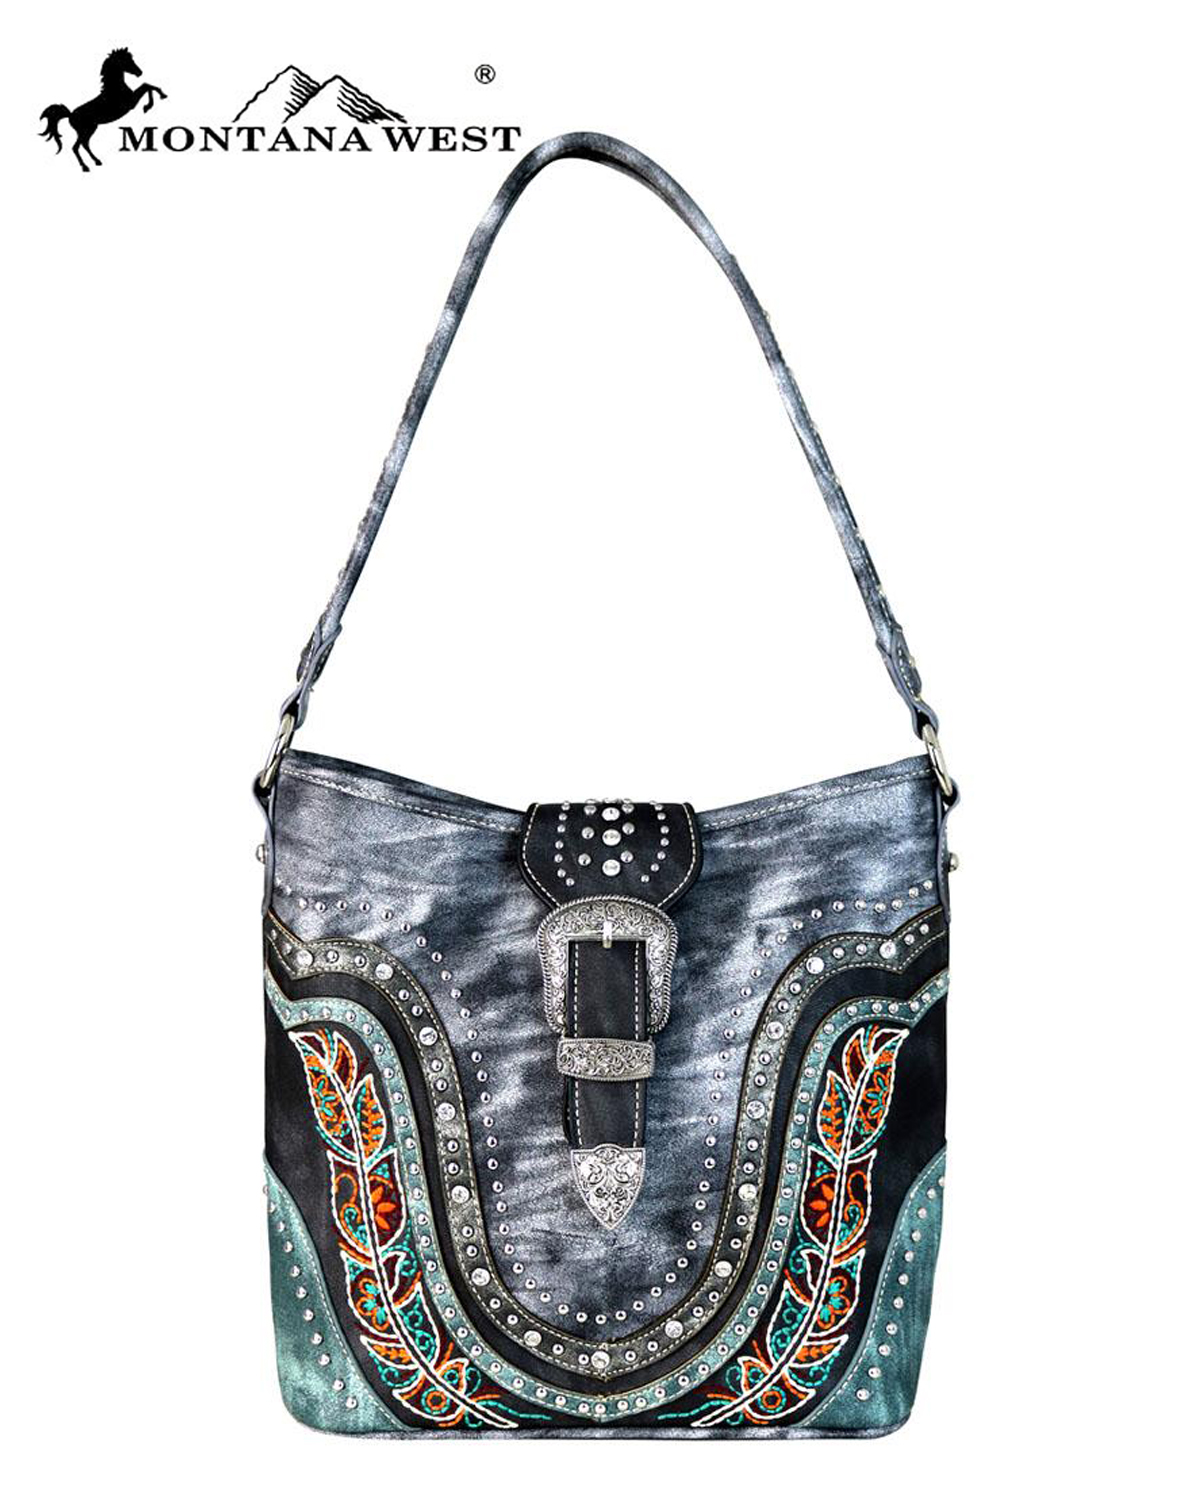 MW656916(BK)-MW-wholesale-montana-west-handbag-embroidered-belt-buckle-rhinestone-stud-western-flap-distressed-color(0).jpg